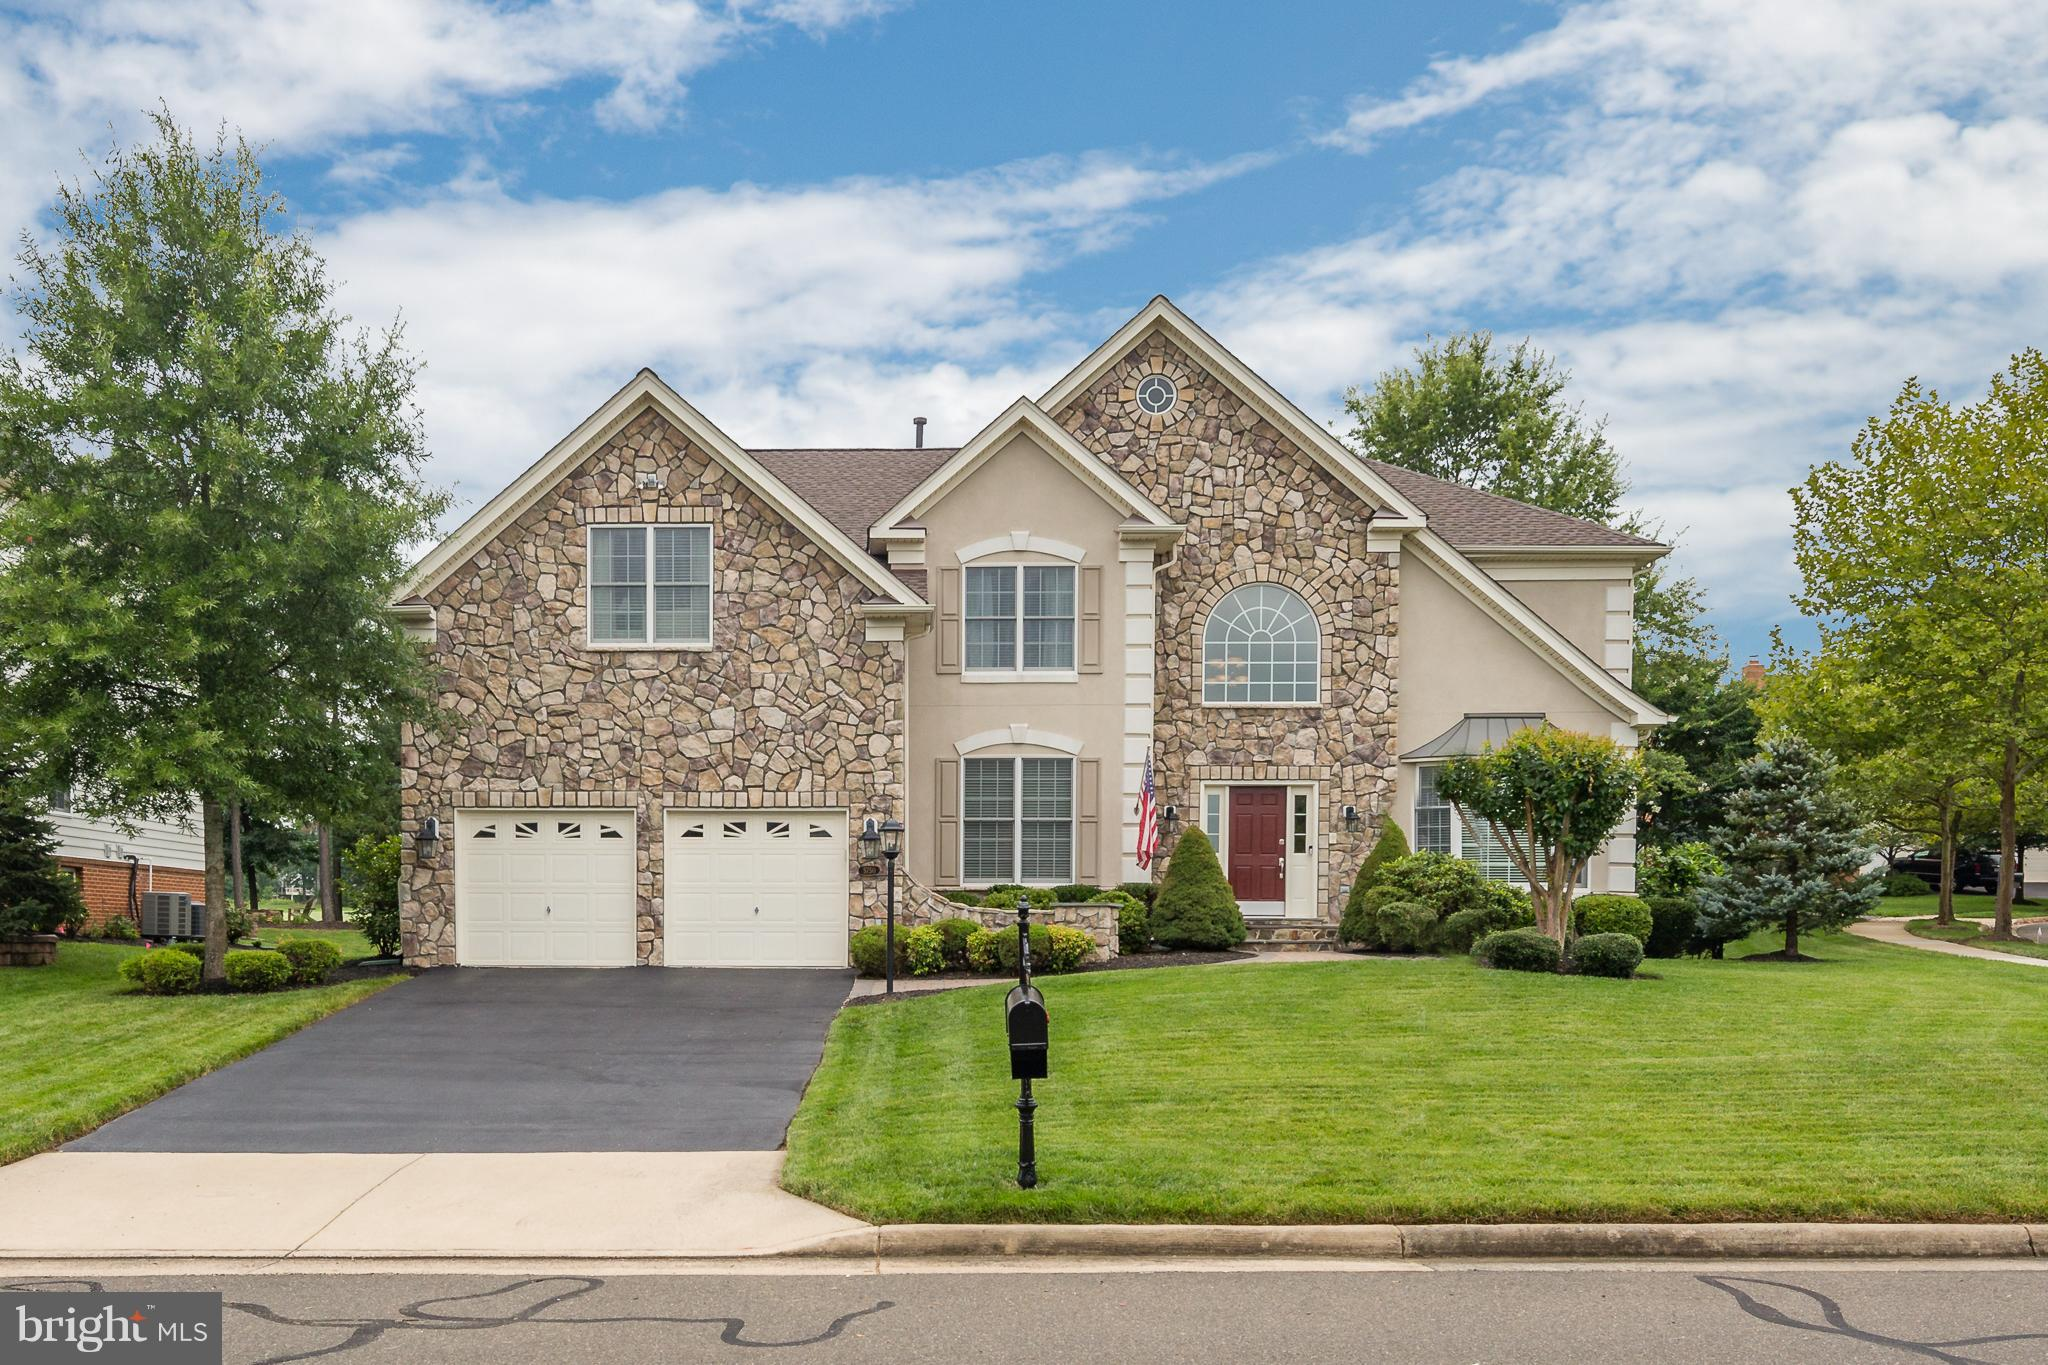 SPECTACULAR HOME ON GOLF COURSE LOT**HARDWOODS ON MAIN LEVEL**MAIN LEVEL LIBRARY W/BUILT-INS**GOURMET KITCH W/UPG GRANITE,CABS, SS APPLIANCES & BACKSPASH**SUNDRENCHED SUN RM W/W-OUT TO TREX DECK & CUSTOM PATIO OVERLOOKING GOLF COURSE**EXTENDED FAM RM W/STONE FP**ELEGANT MASTER SUITE W/SIT RM, HIS/HER CLOSETS & LUX MASTER BATH**FF BASEMENT W/HUGE REC RM, GYM, FULL BA**OVERSIZED GARAGE**MUST SEE!